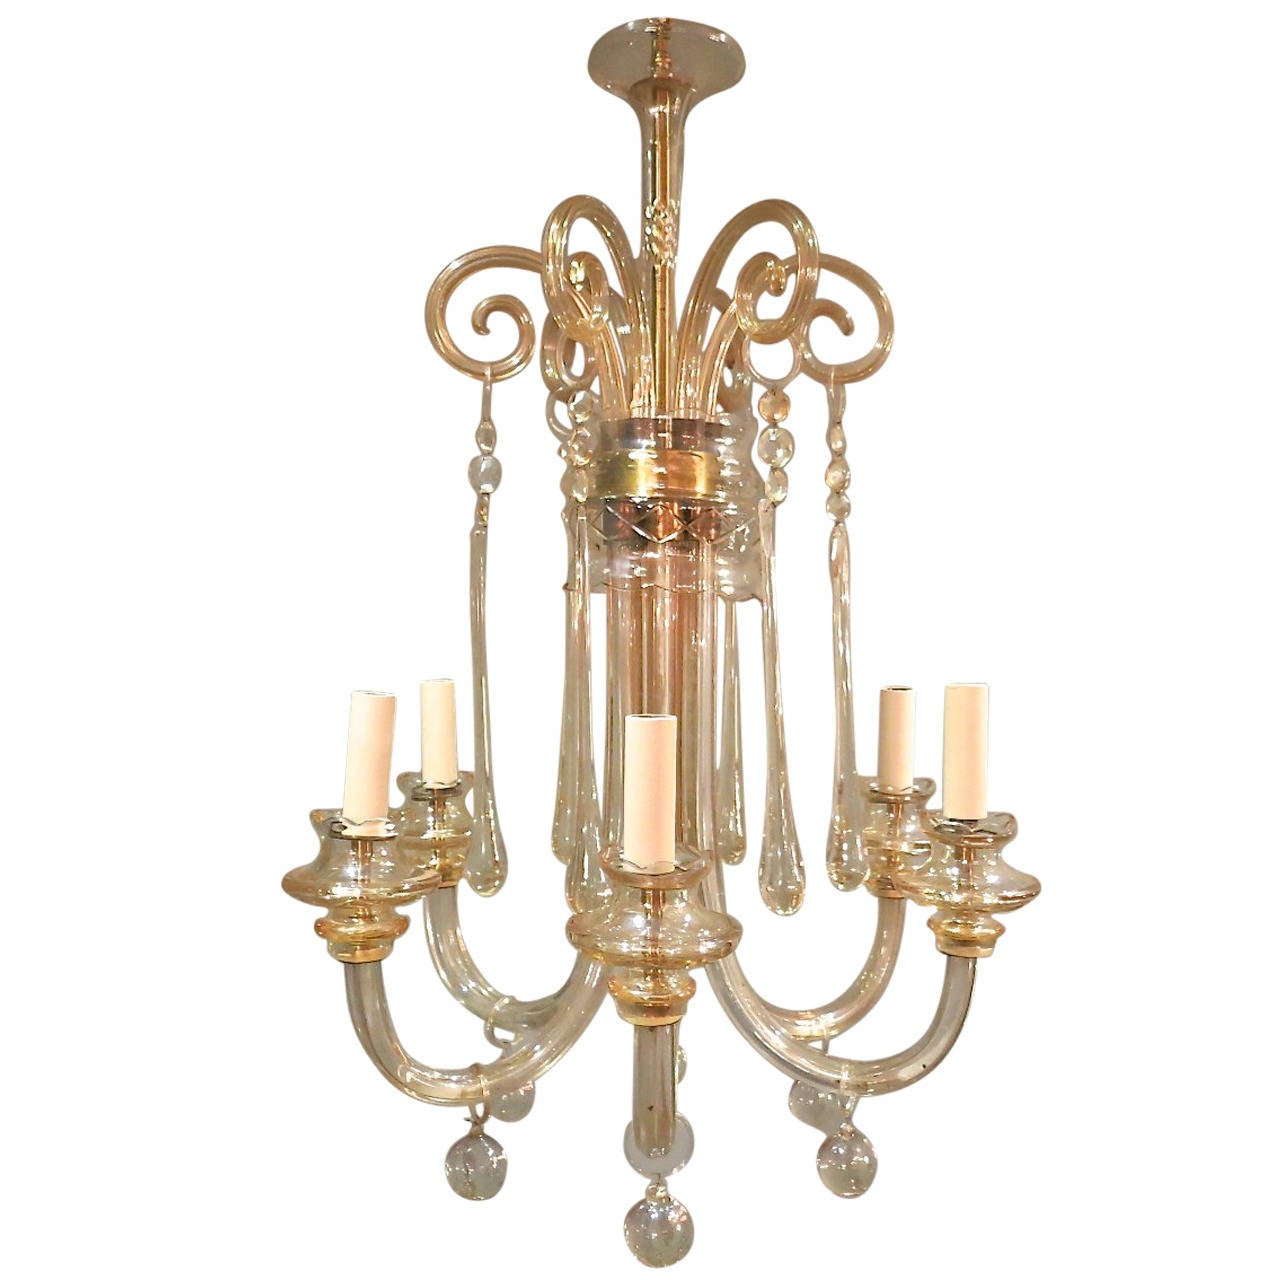 Vintage Italian Murano Chandelier For Sale at 1stdibs